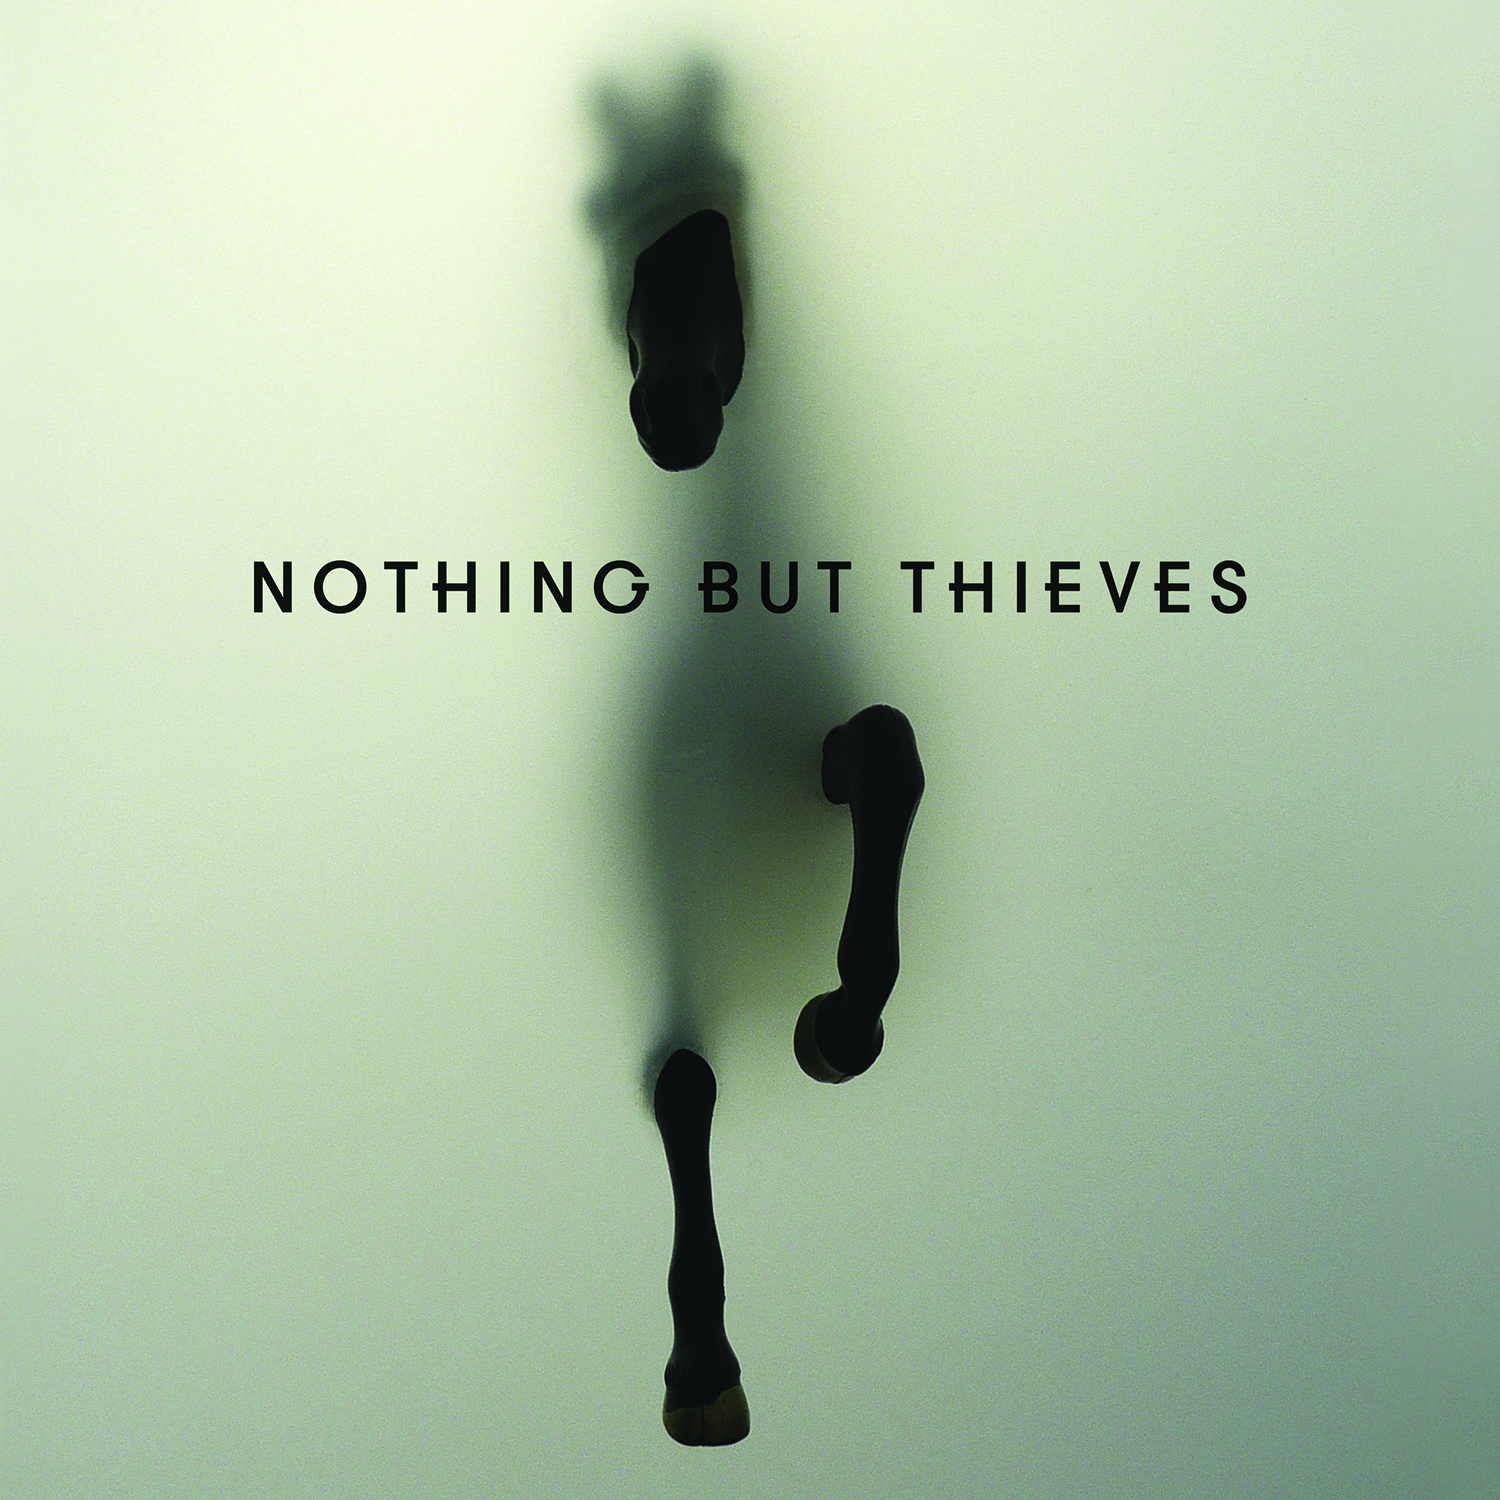 Nothing But Thieves - Nothing But Thieves (2015)